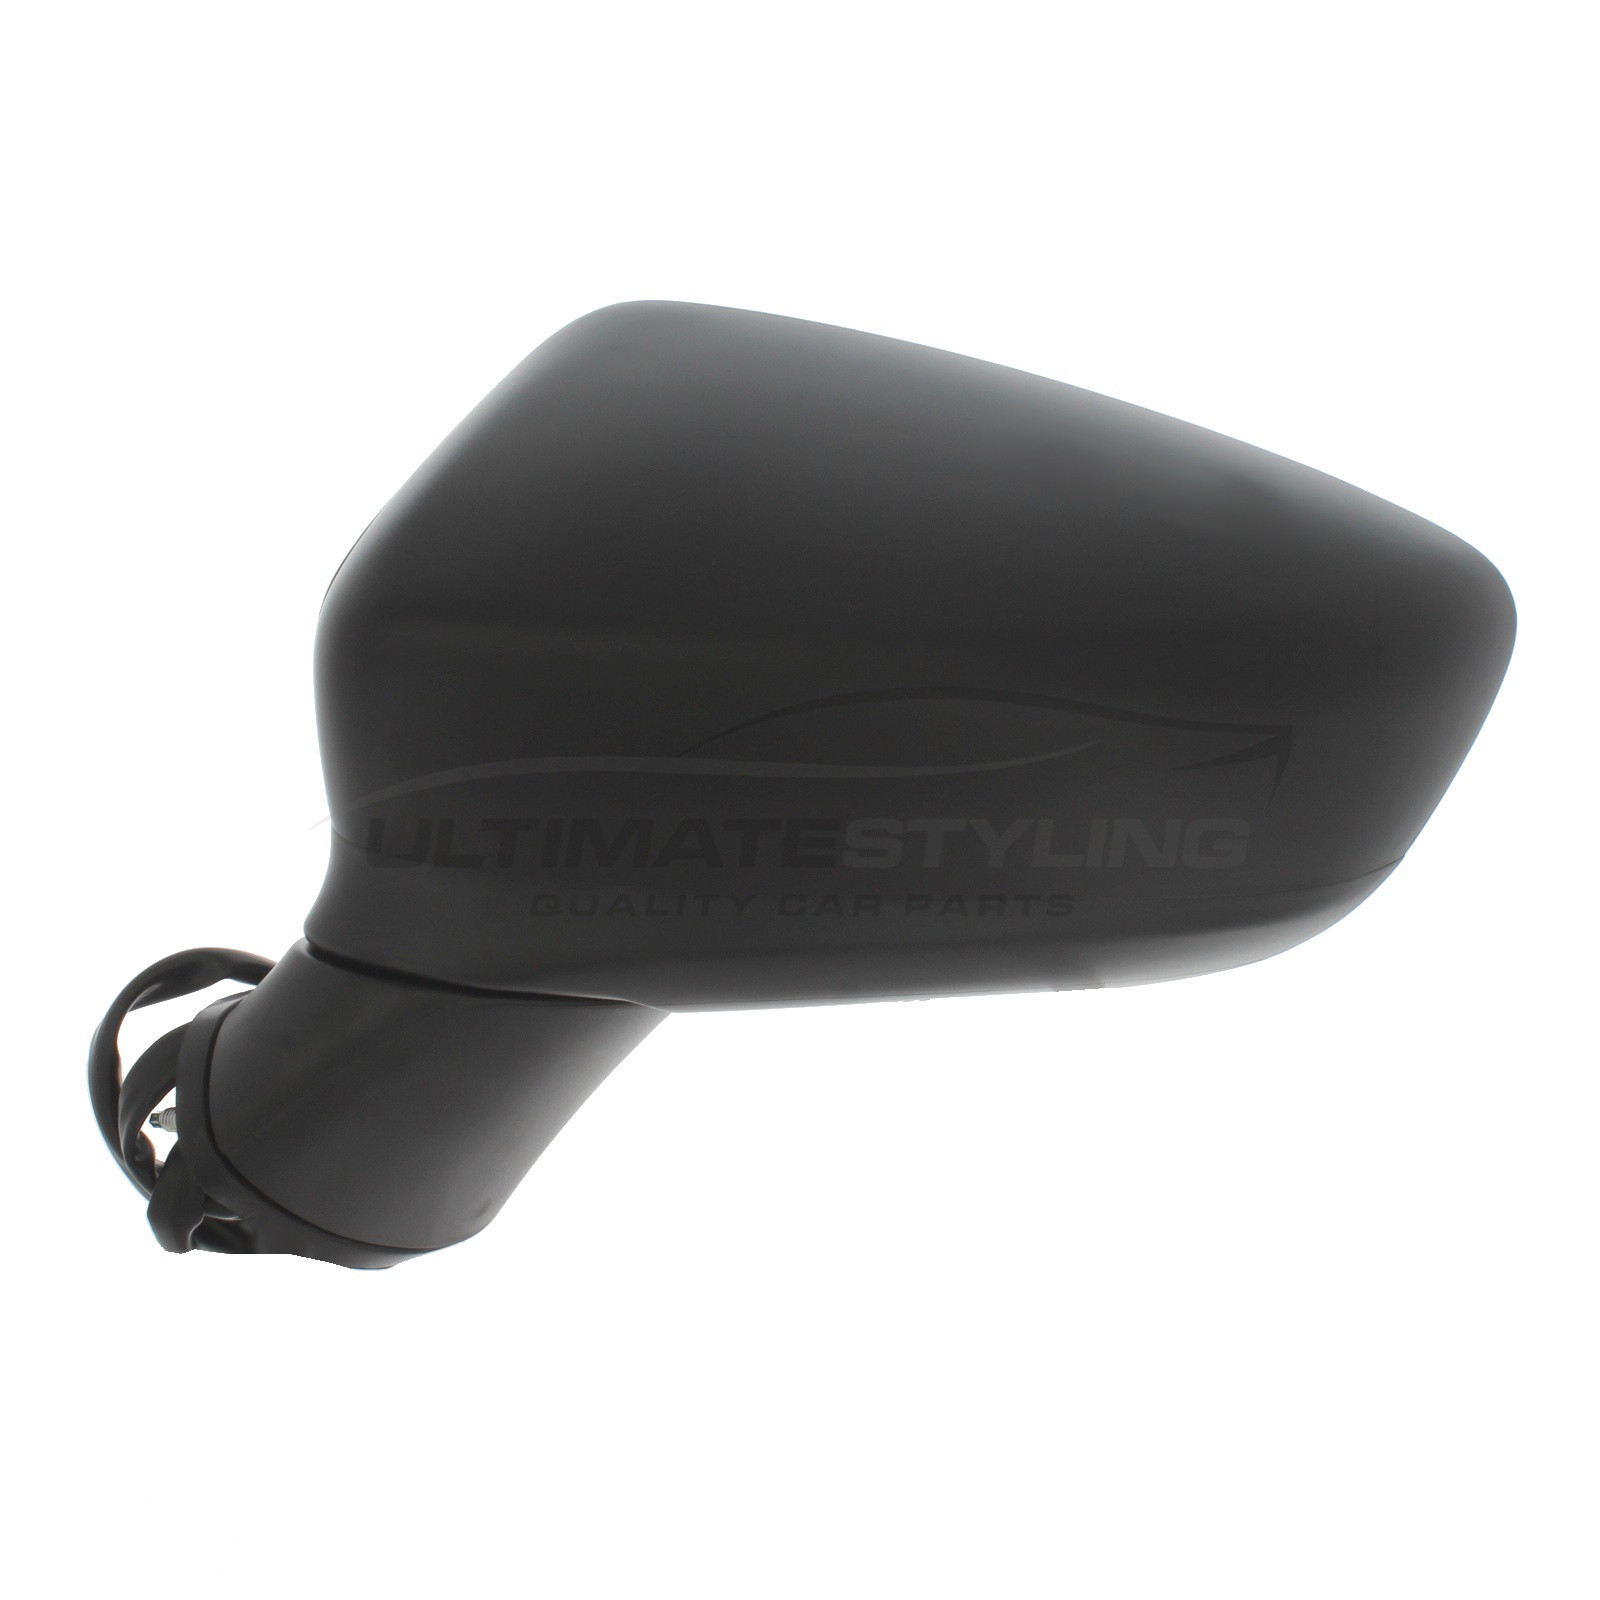 Black For Passenger Side Ultimate Styling Aftermarket Replacement Wing Mirror Cover Cap Colour Of Cover Paintable Left Hand Side LH